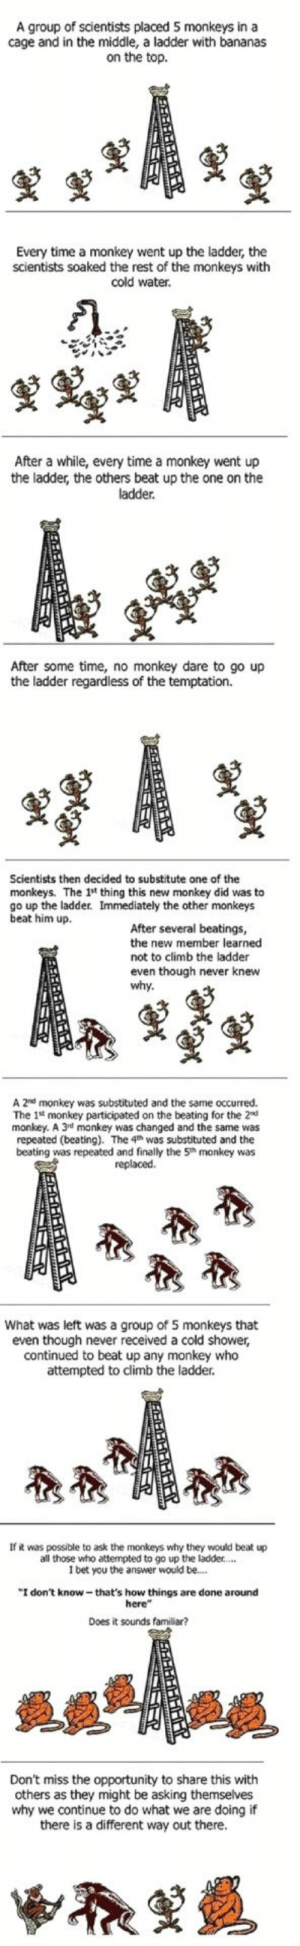 "I Bet, Shower, and Monkey: A group of scientists placed 5 monkeys in a  cage and in the middle, a ladder with bananas  on the top.  Every time a monkey went up the ladder, the  scientists soaked the rest of the monkeys with  cold water.  After a while, every time a monkey went up  the ladder, the others beat up the one on the  ladder.  After some time, no monkey dare to go up  the ladder regardless of the temptation.  Scientists then decided to substitute one of the  monkeys. The 1st thing this new monkey did was to  go up the ladder. Immediately the other monkeys  beat him up.  After several beatings,  the new member learned  not to climb the ladder  even though never knew  why  A 2nd monkey was substituted and the same occurred.  The 1st monkey participated on the beating for the 2nd  monkey. A 3rd monkey was changed and the same was  repeated (beating). The 4h was substituted and the  beating was repeated and finally the 5th monkey was  replaced.  What was left was a group of 5 monkeys that  even though never received a cold shower,  continued to beat up any monkey who  attempted to climb the ladder.  If it was possible to ask the monkeys why they would beat up  all those who attempted to go up the ladder....  I bet you the answer would be...  ""I don't know-that's how things are done around  here""  Does it sounds familiar?  Don't miss the opportunity to share this with  others as they might be asking themselves  why we continue to do what we are doing if  there is a different way out there. Curious Monkey Experiment: are you a blind follower?"